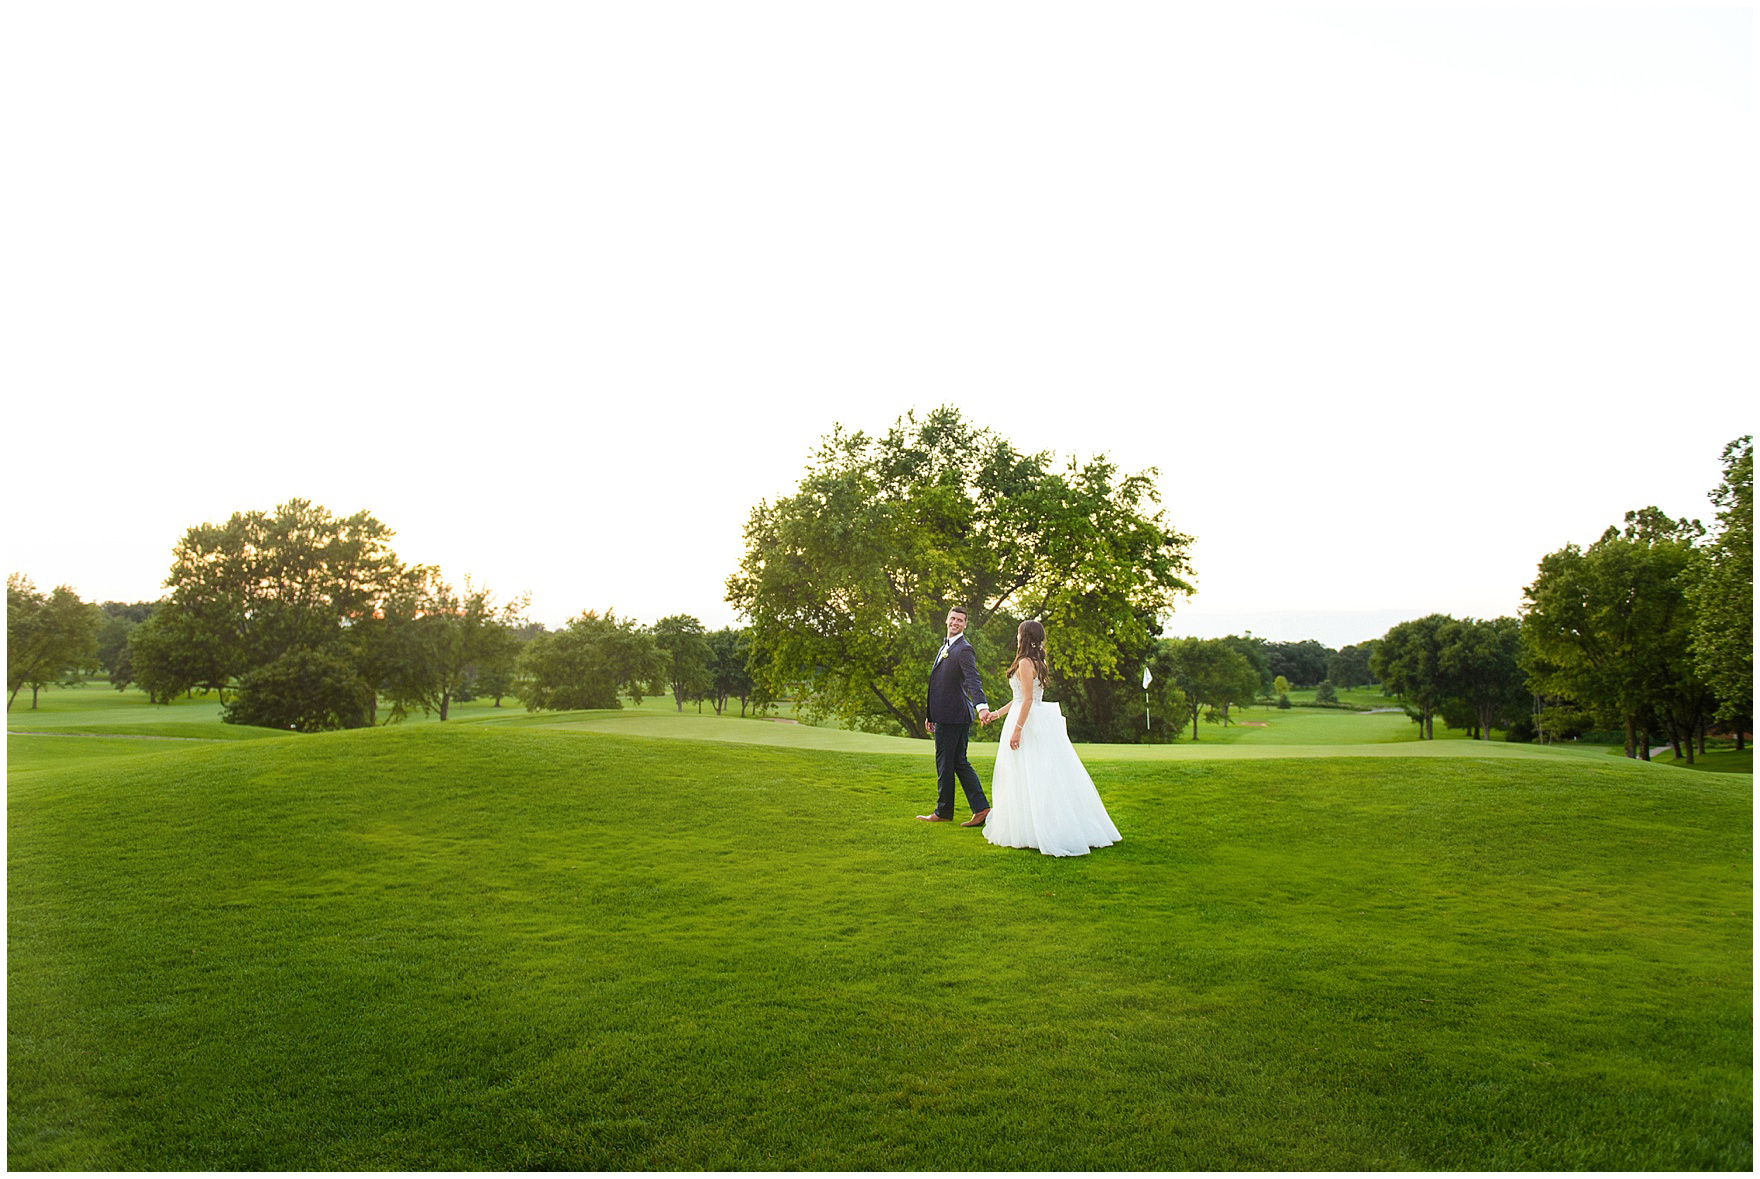 A bride and groom walk along the golf course at sunset during a Biltmore Country Club Barrington wedding.